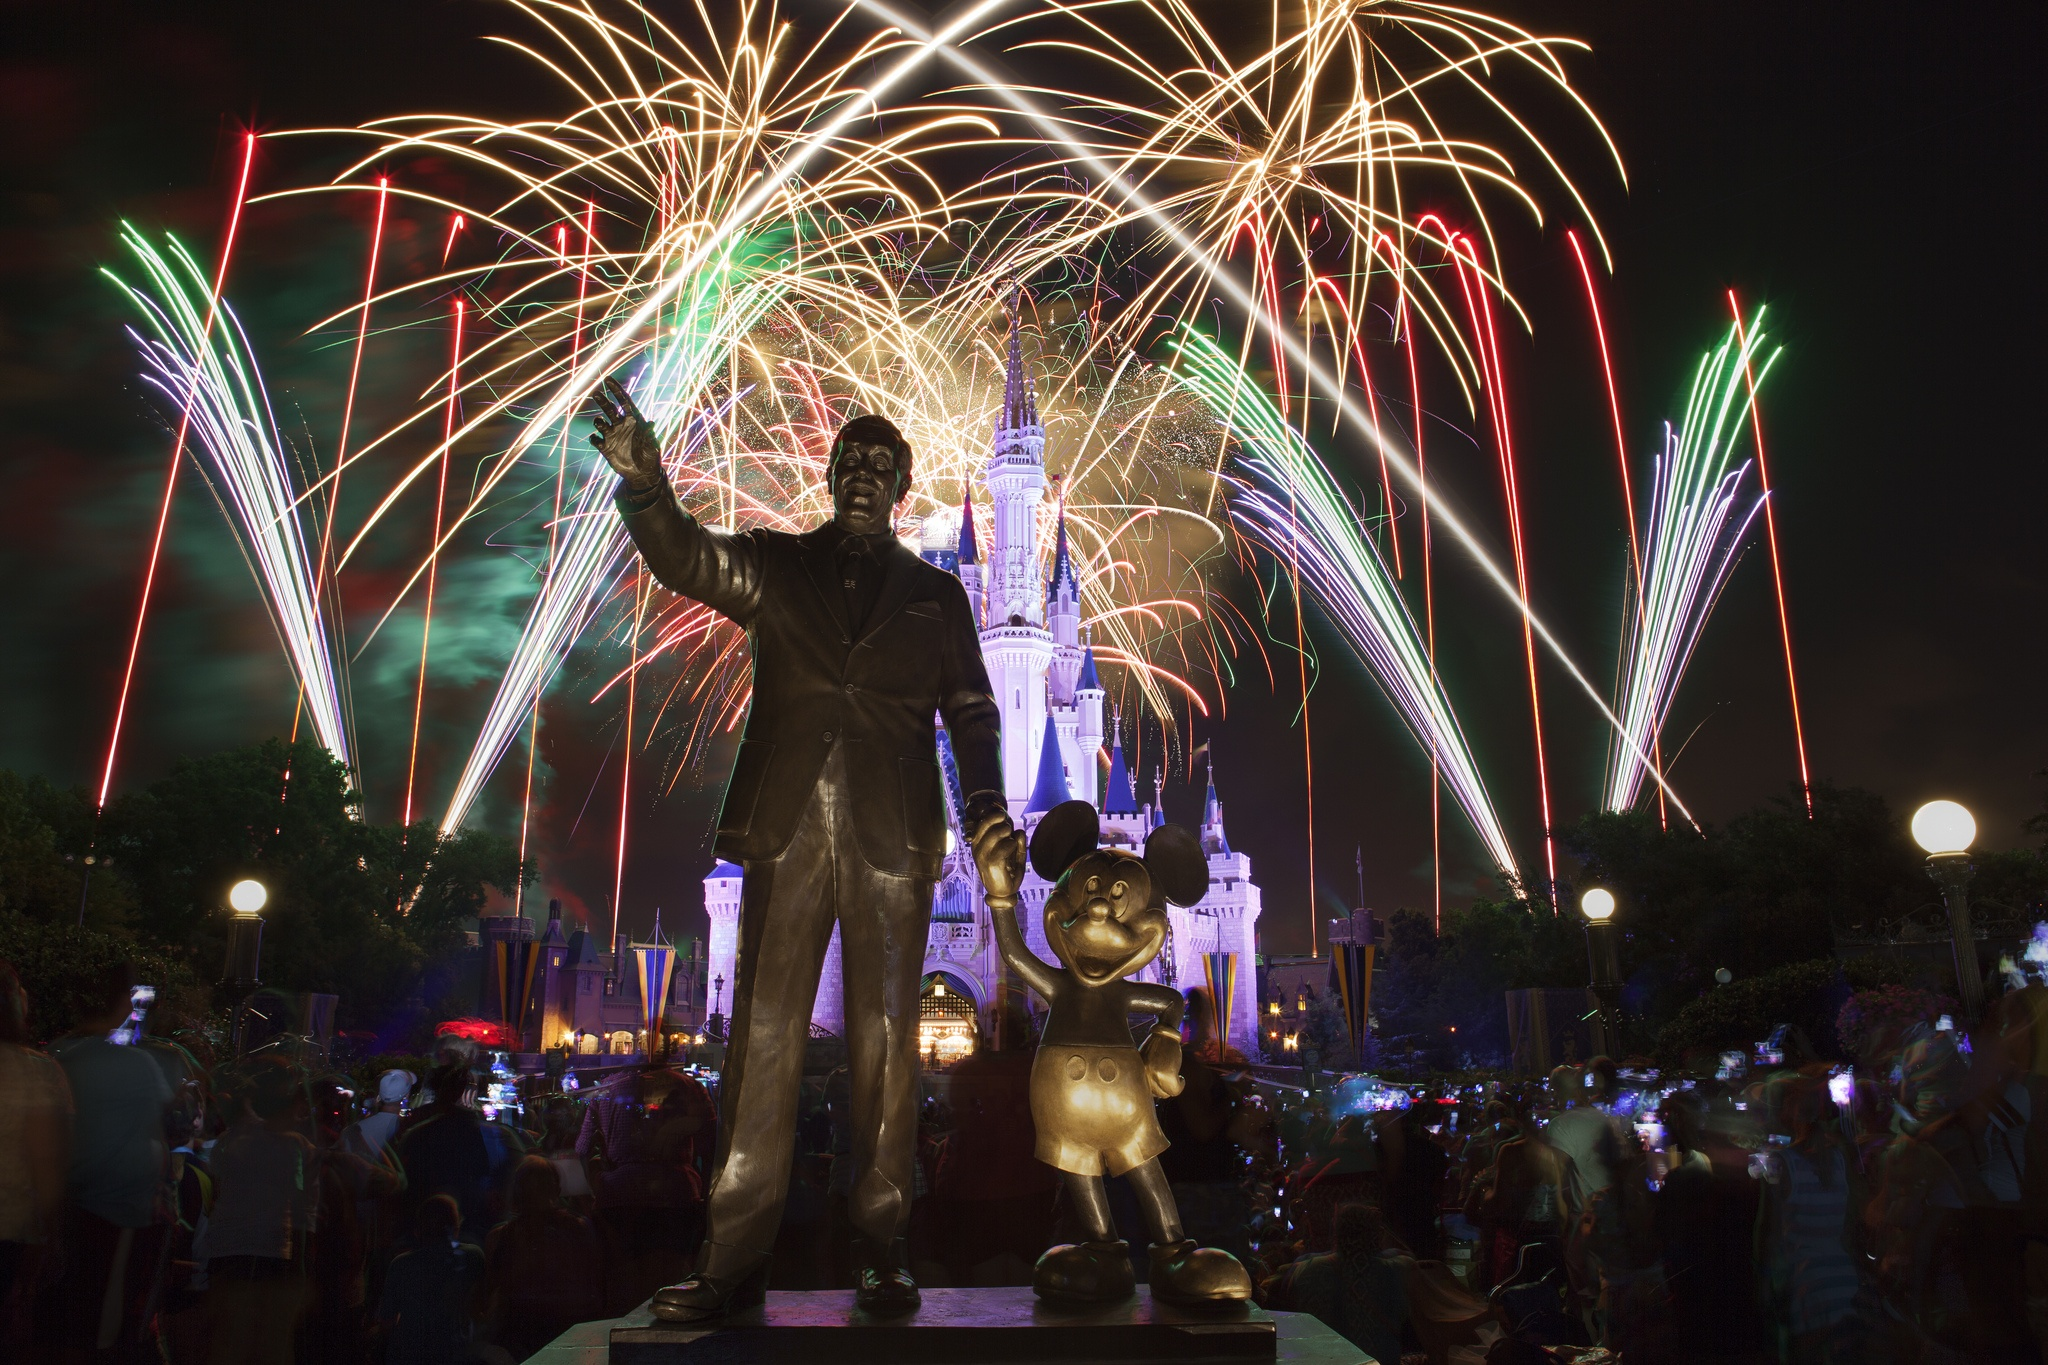 Disney, Accenture partner to prototype next-generation entertainment experiences